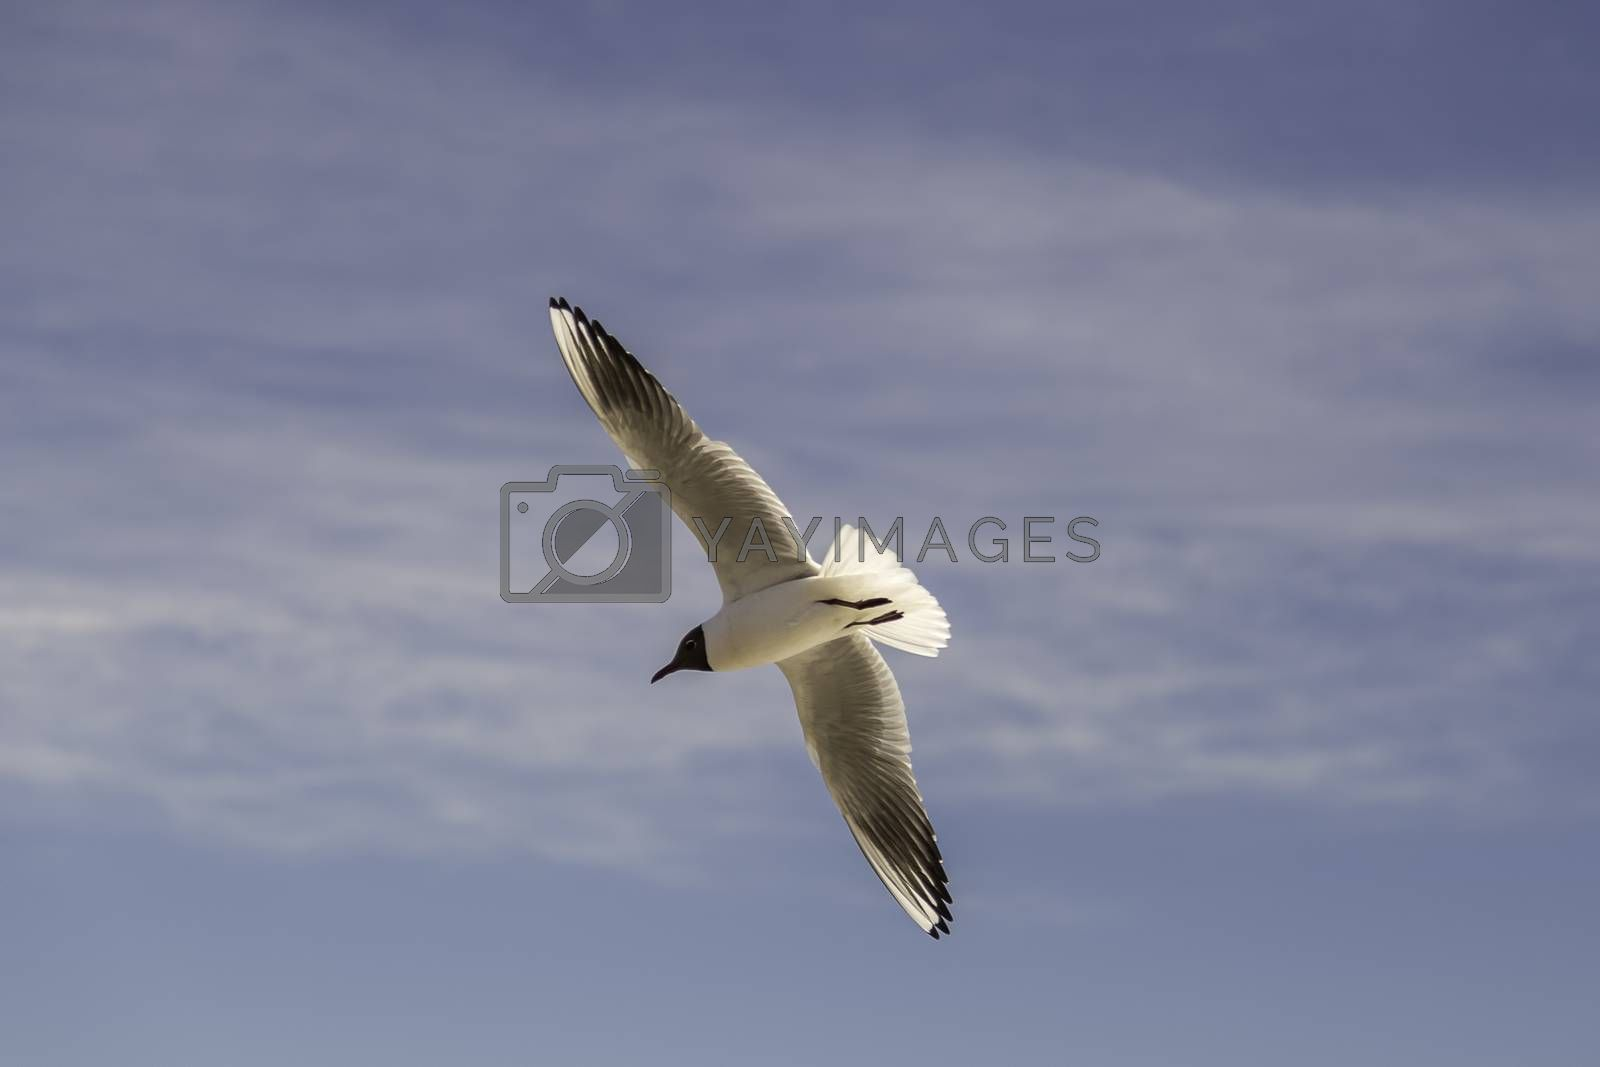 Black-headed Gull Flying with spread wings.